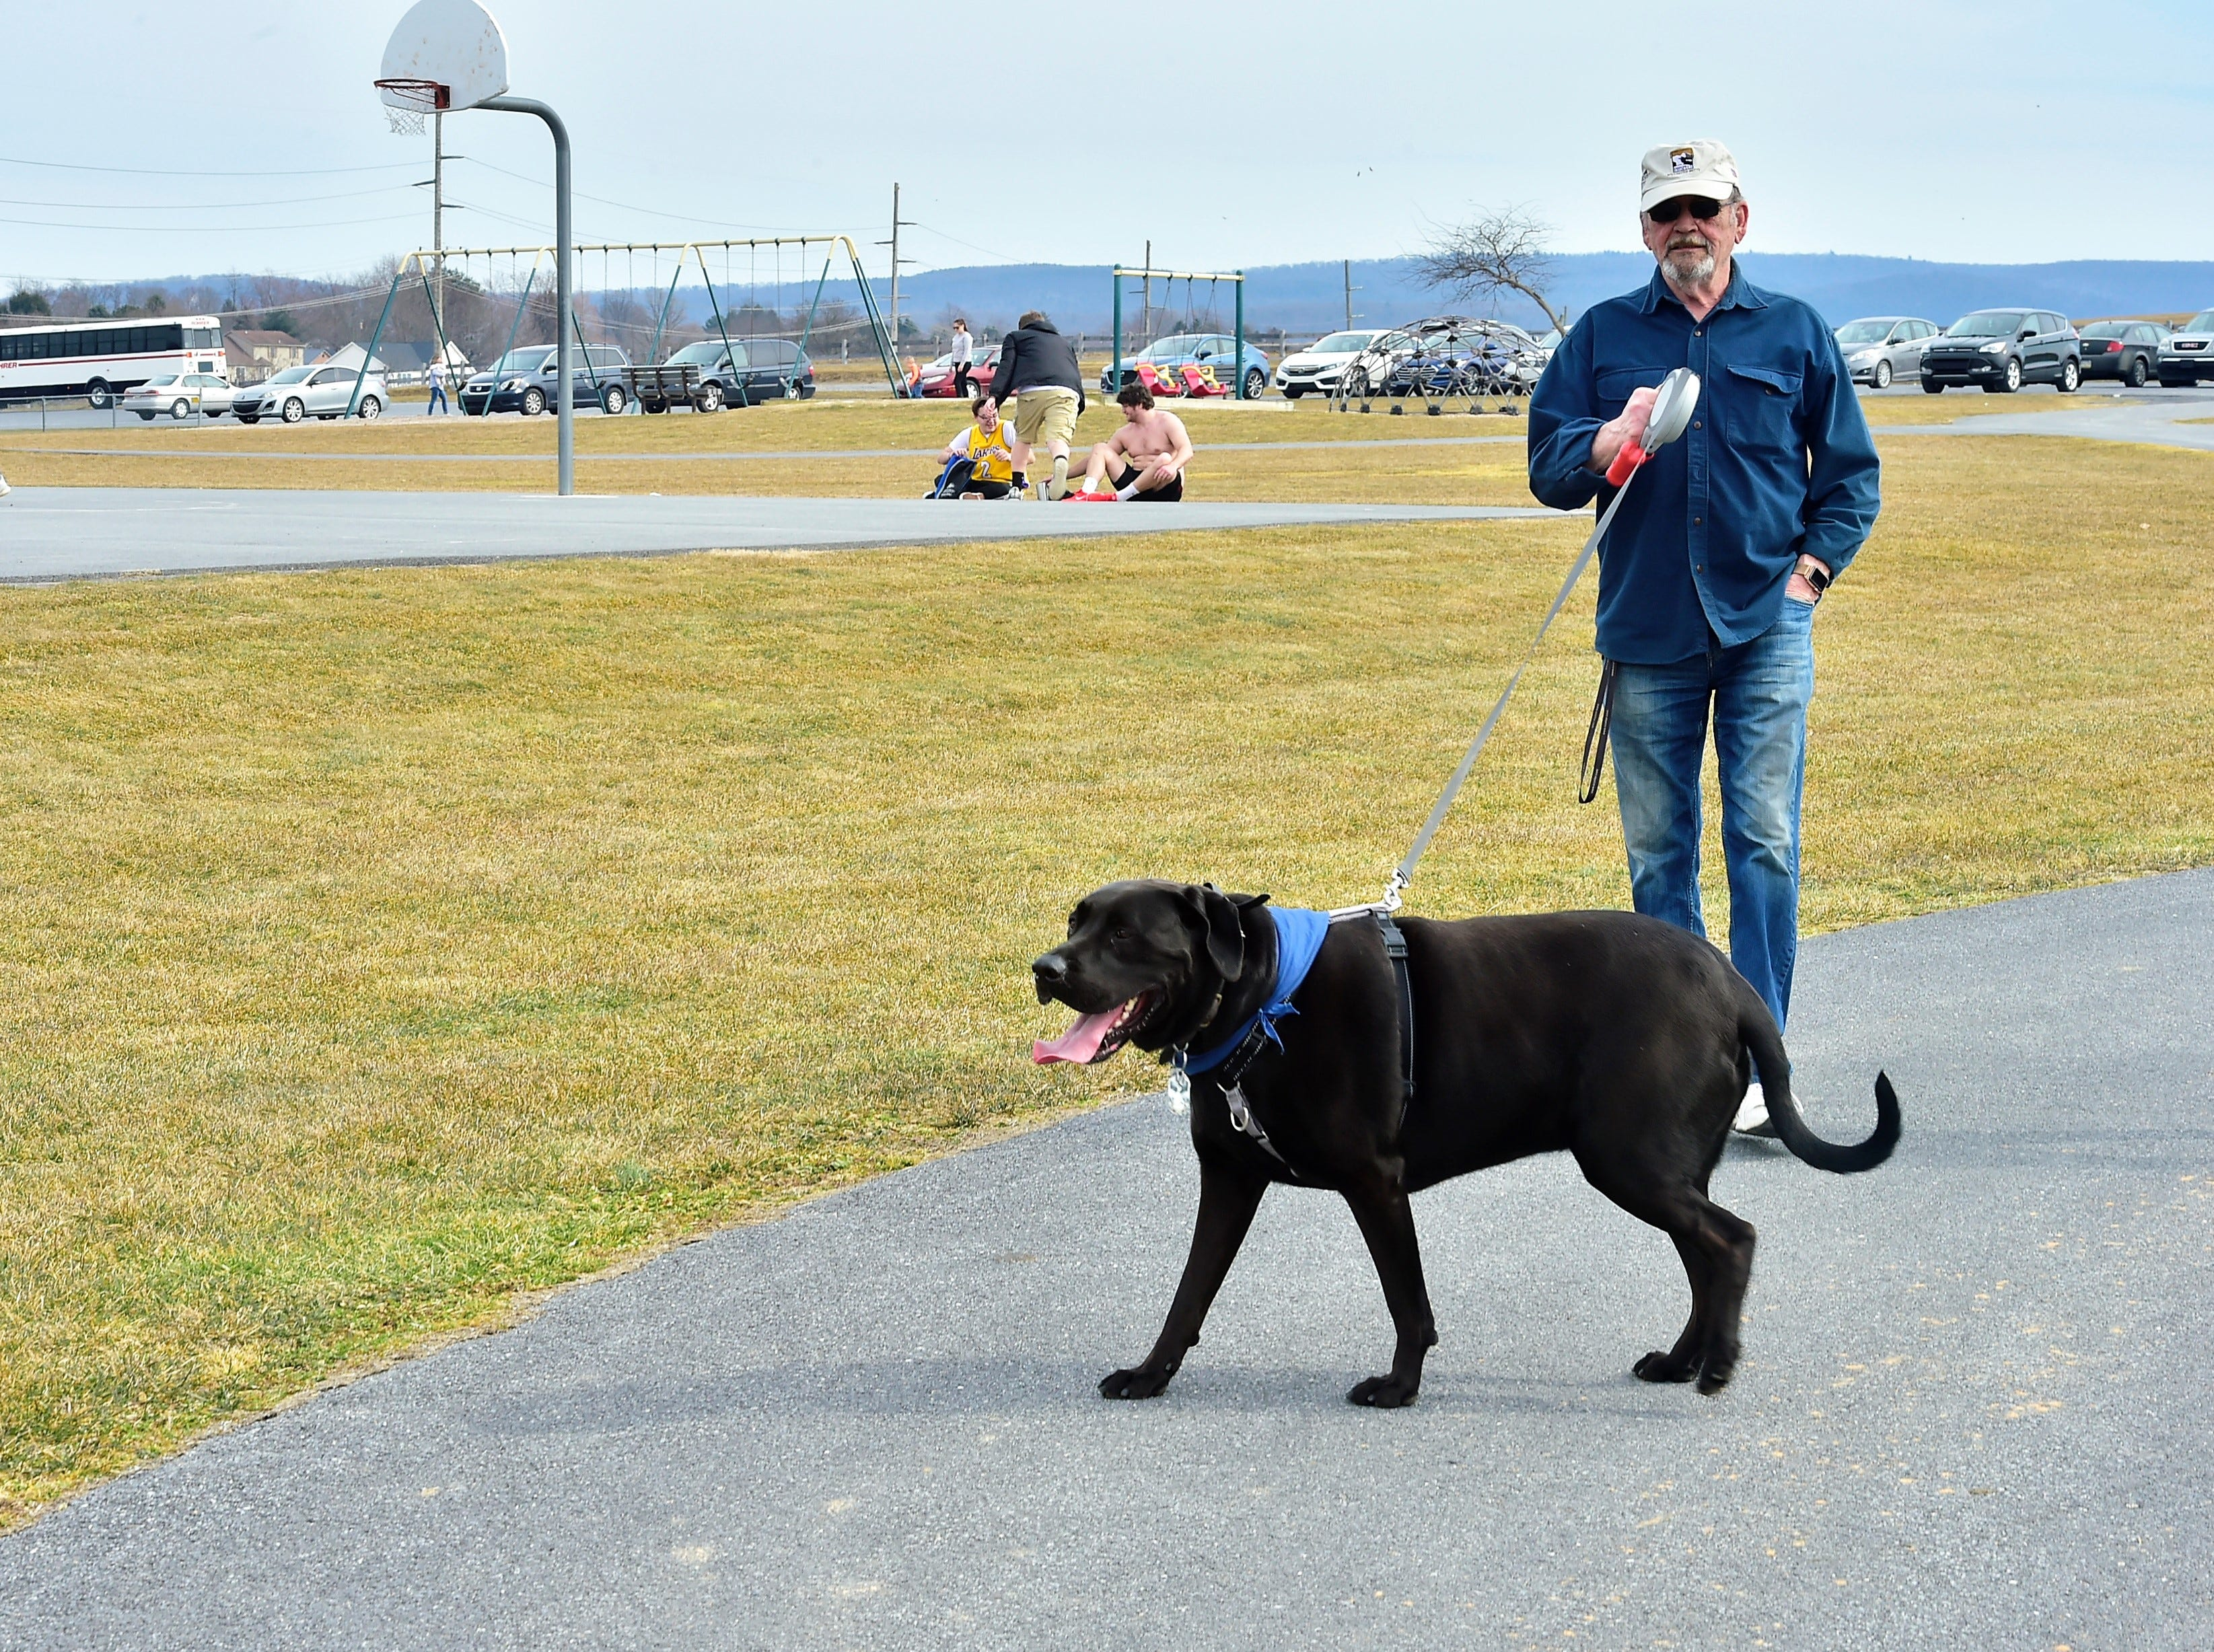 Ron Thompson, Fayetteville, walks his dog on a warm Thursday afternoon, March 14, 2019, at Norlo Park in Fayetteville.